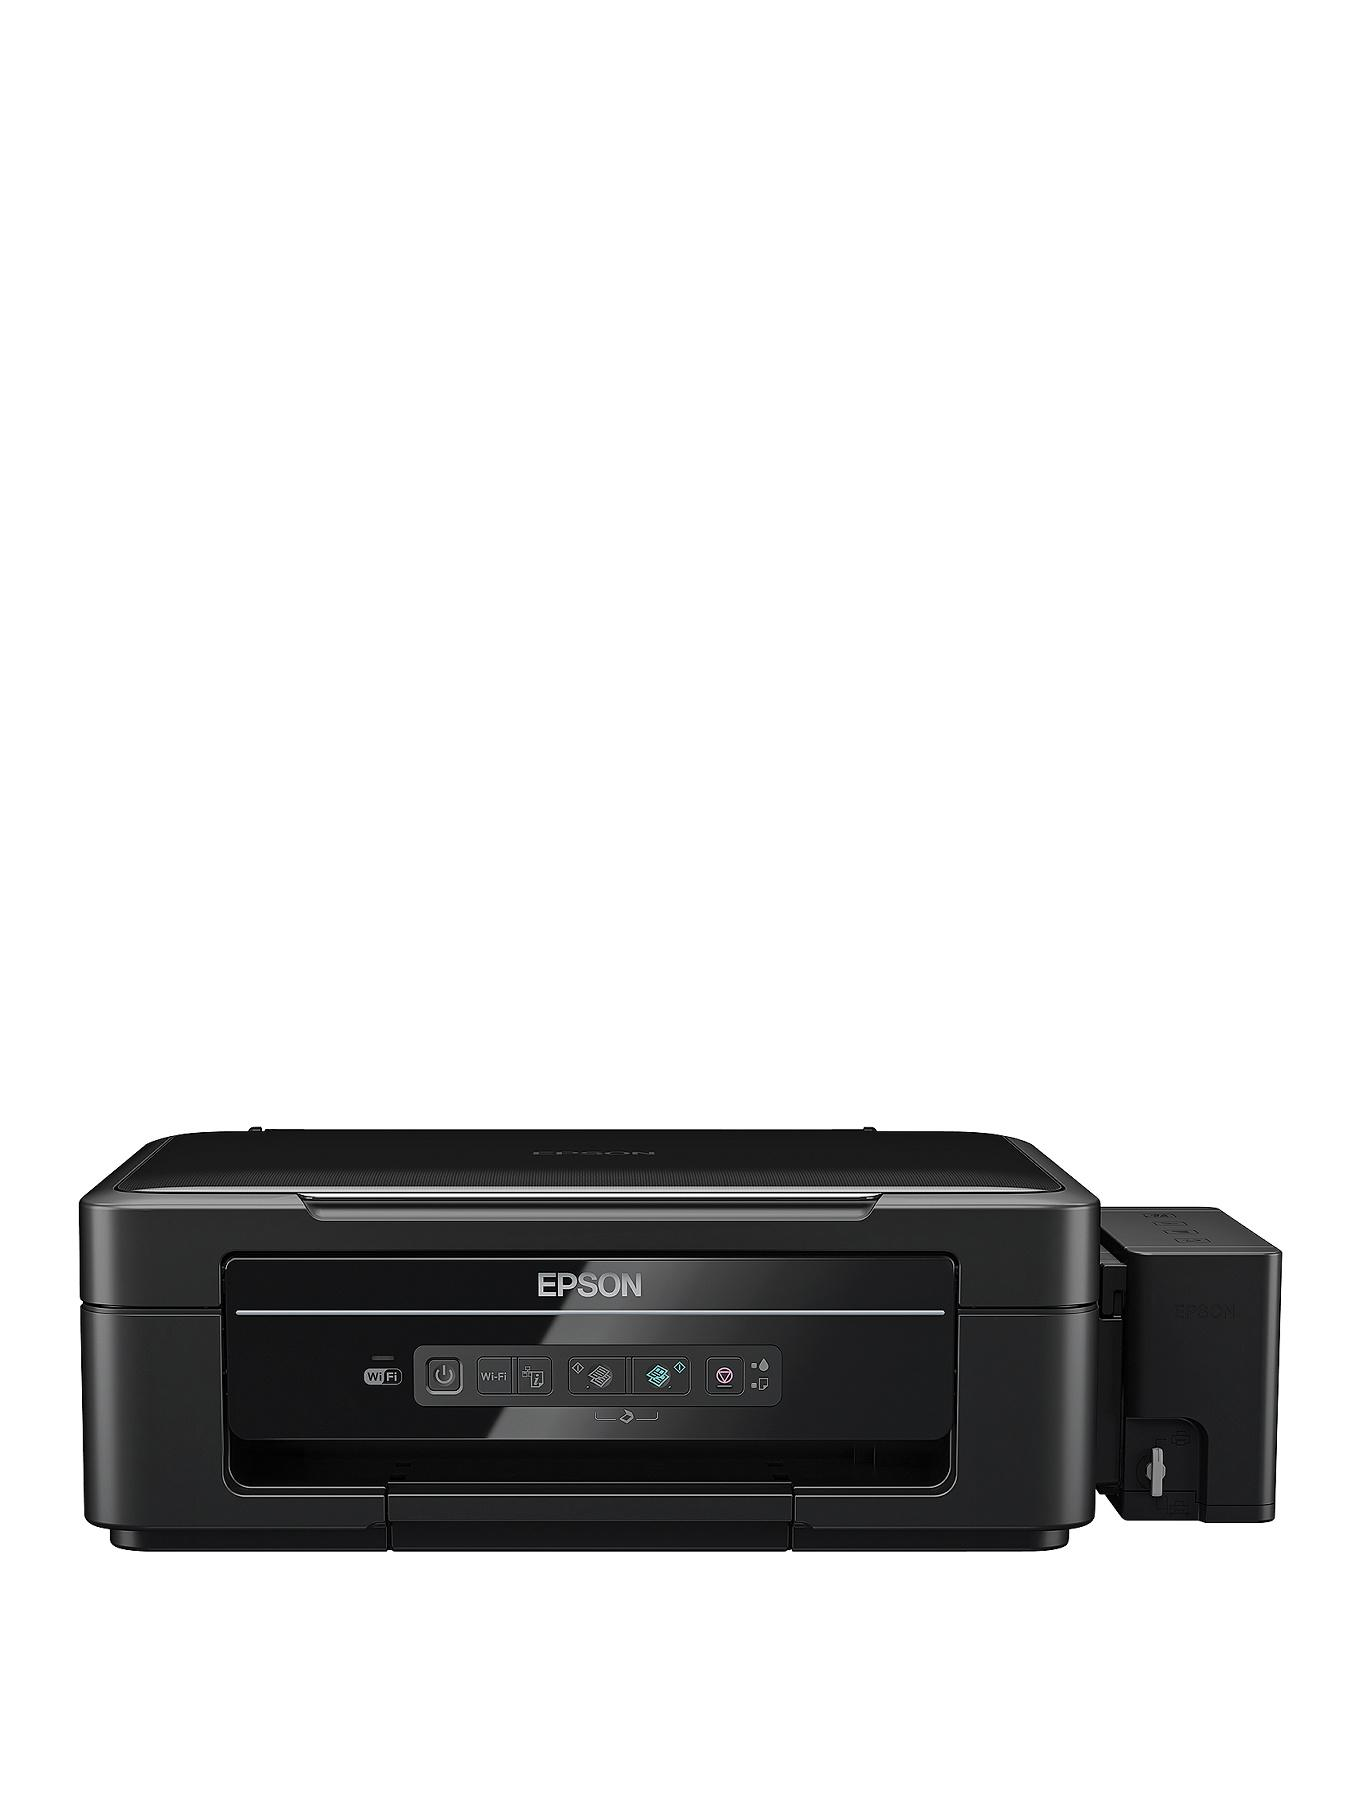 Epson ECO Tank L355 Wireless All-in-One Printer